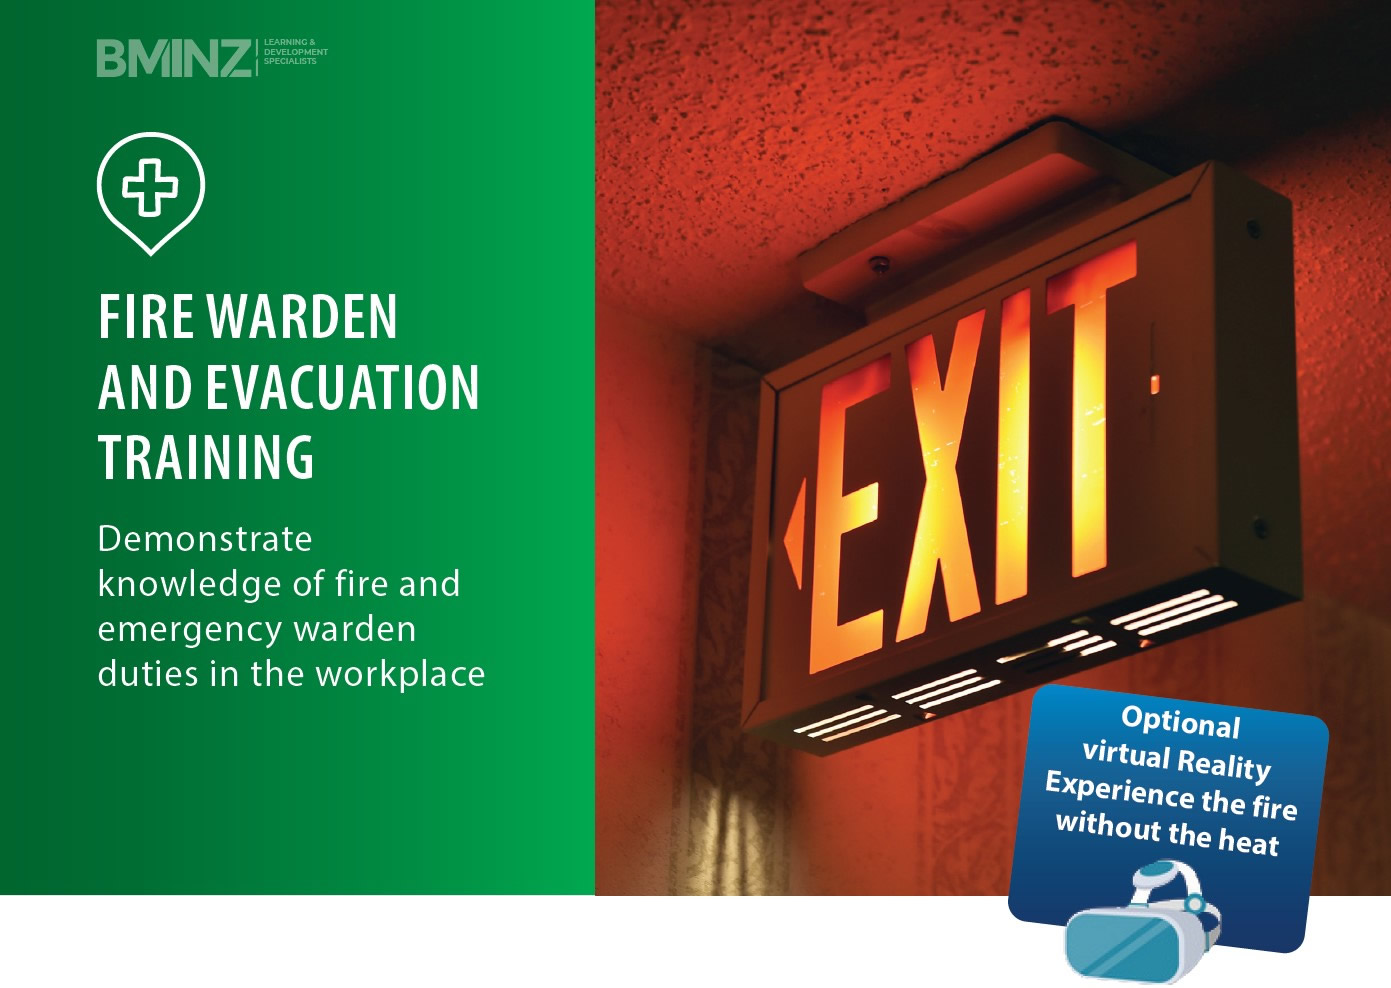 FIRE WARDEN AND EVACUATION TRAINING: Demonstrate knowledge of fire and emergency warden duties in the workplace